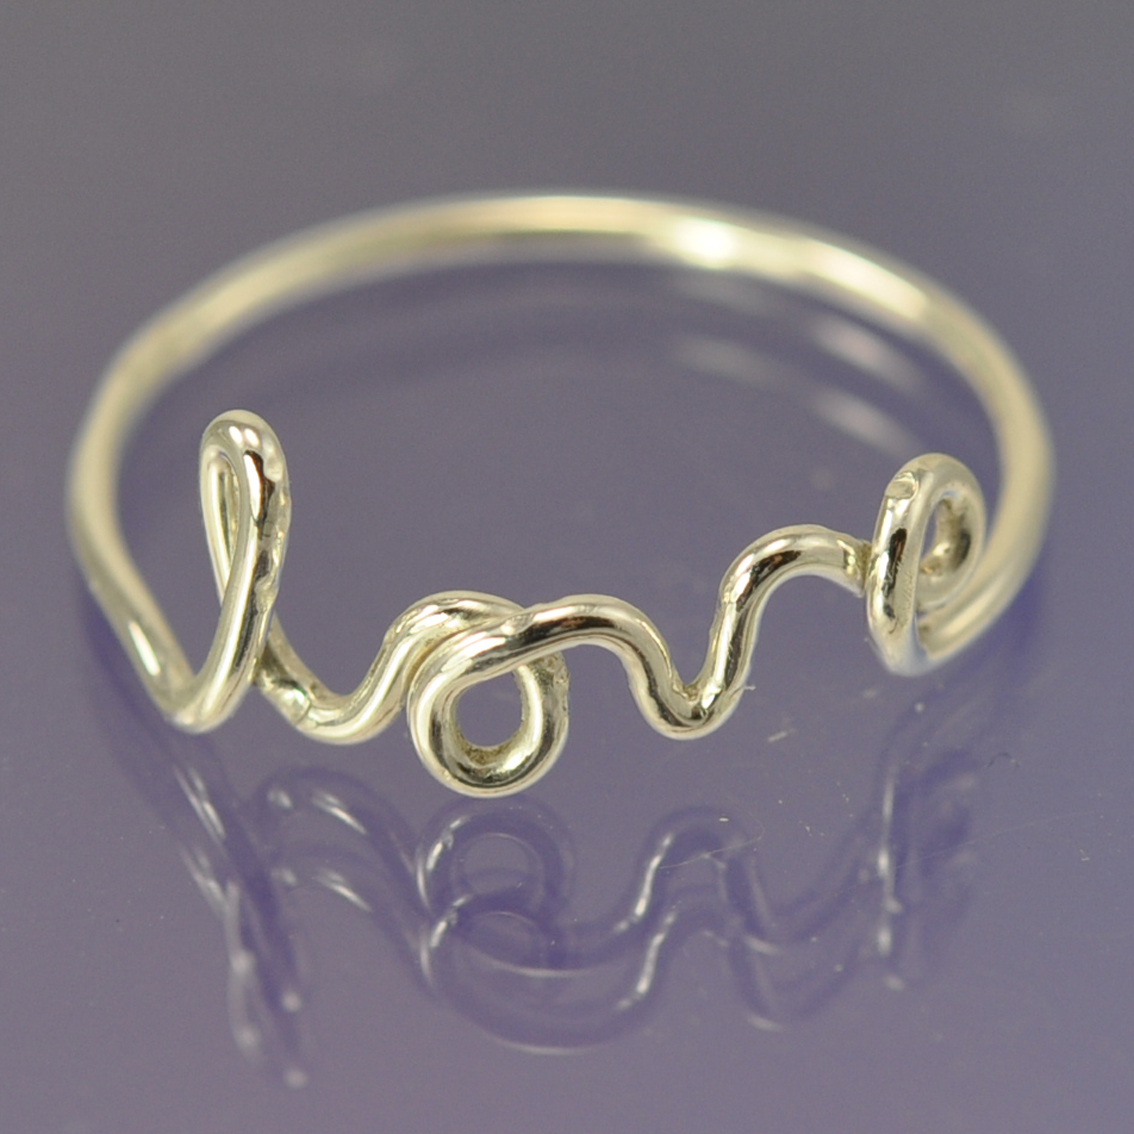 Love ring. Silver | Chris Parry - Handmade Jewellery - Designer / Maker